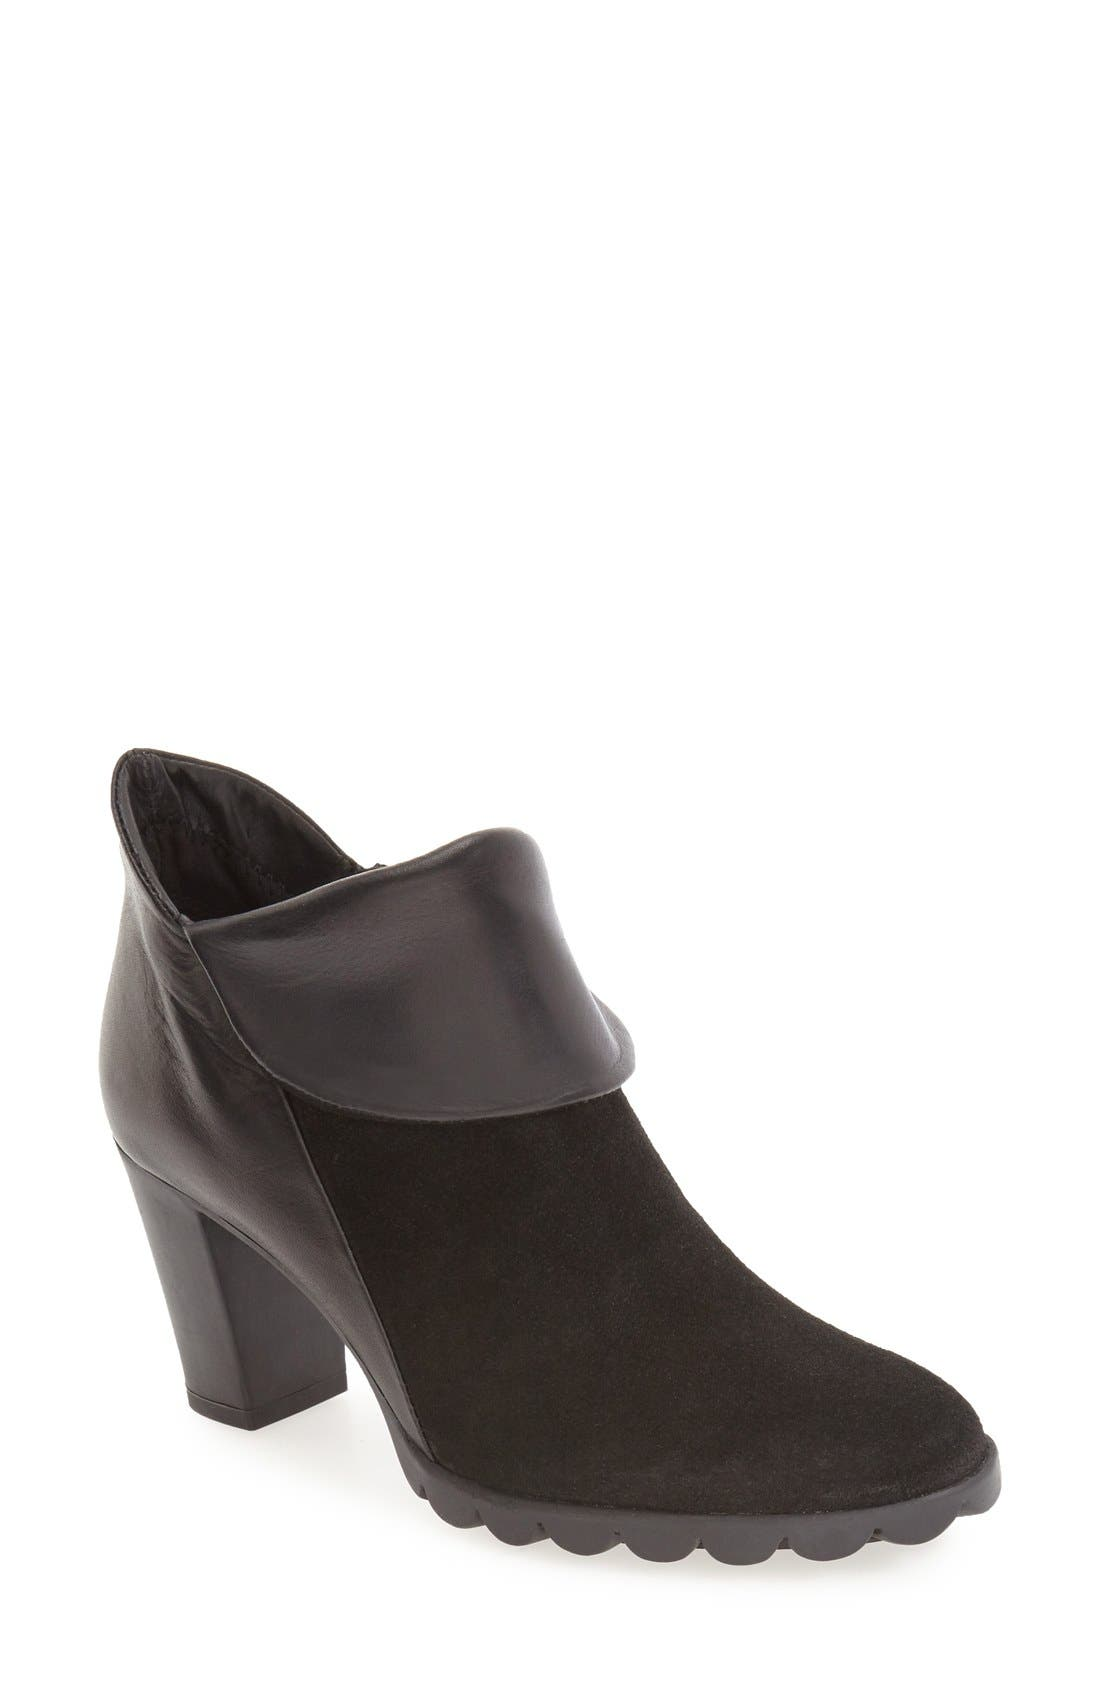 Main Image - The FLEXX 'Dipartment' Bootie (Women)